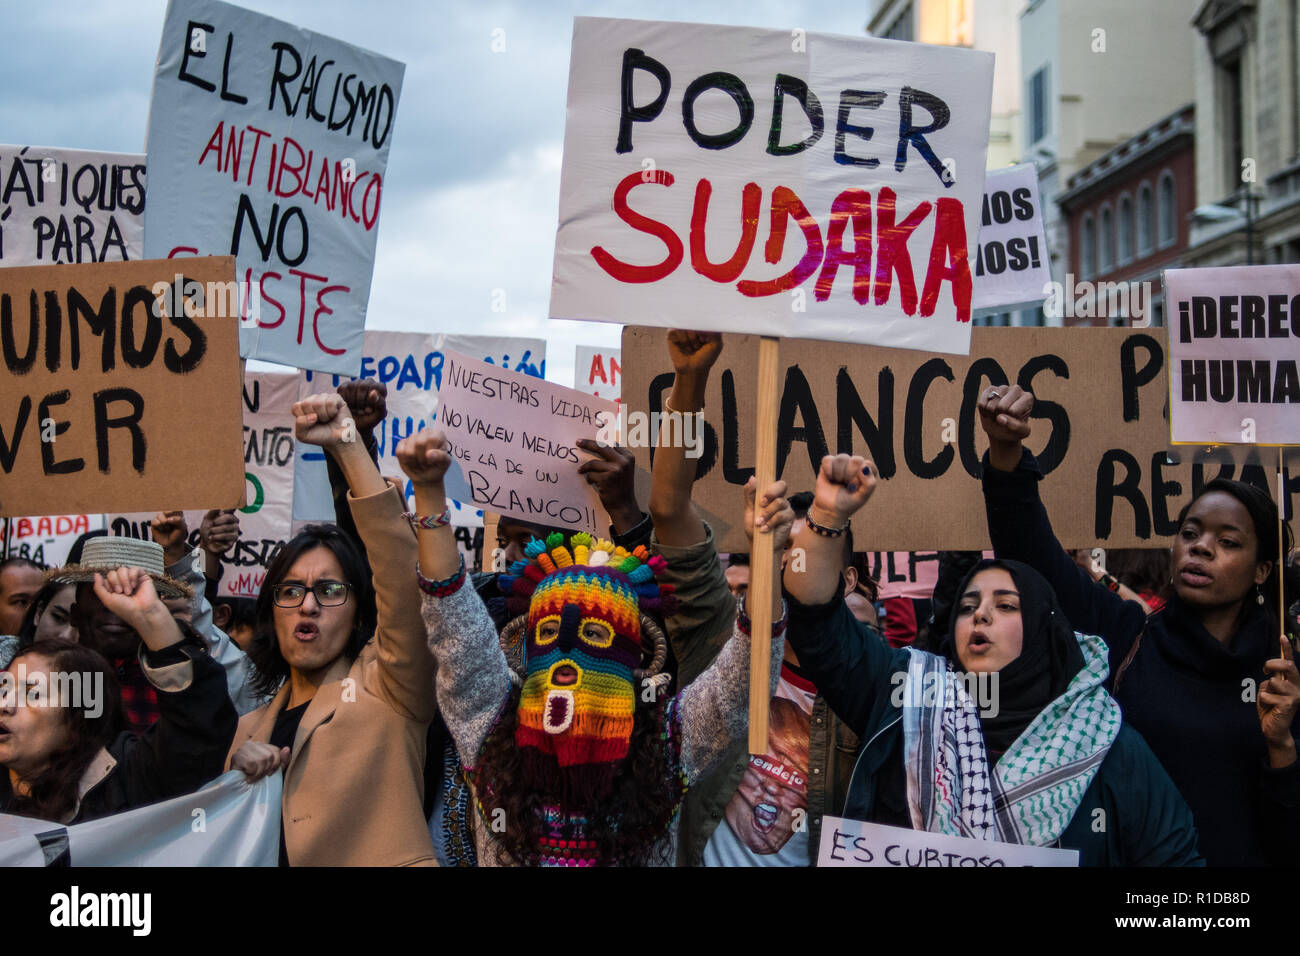 Madrid. Spain. 11th, Nov, 2018. People protesting during a demonstration under the slogan 'Against institutional racism' in Madrid, Spain. Credit: Marcos del Mazo/Alamy Live News - Stock Image